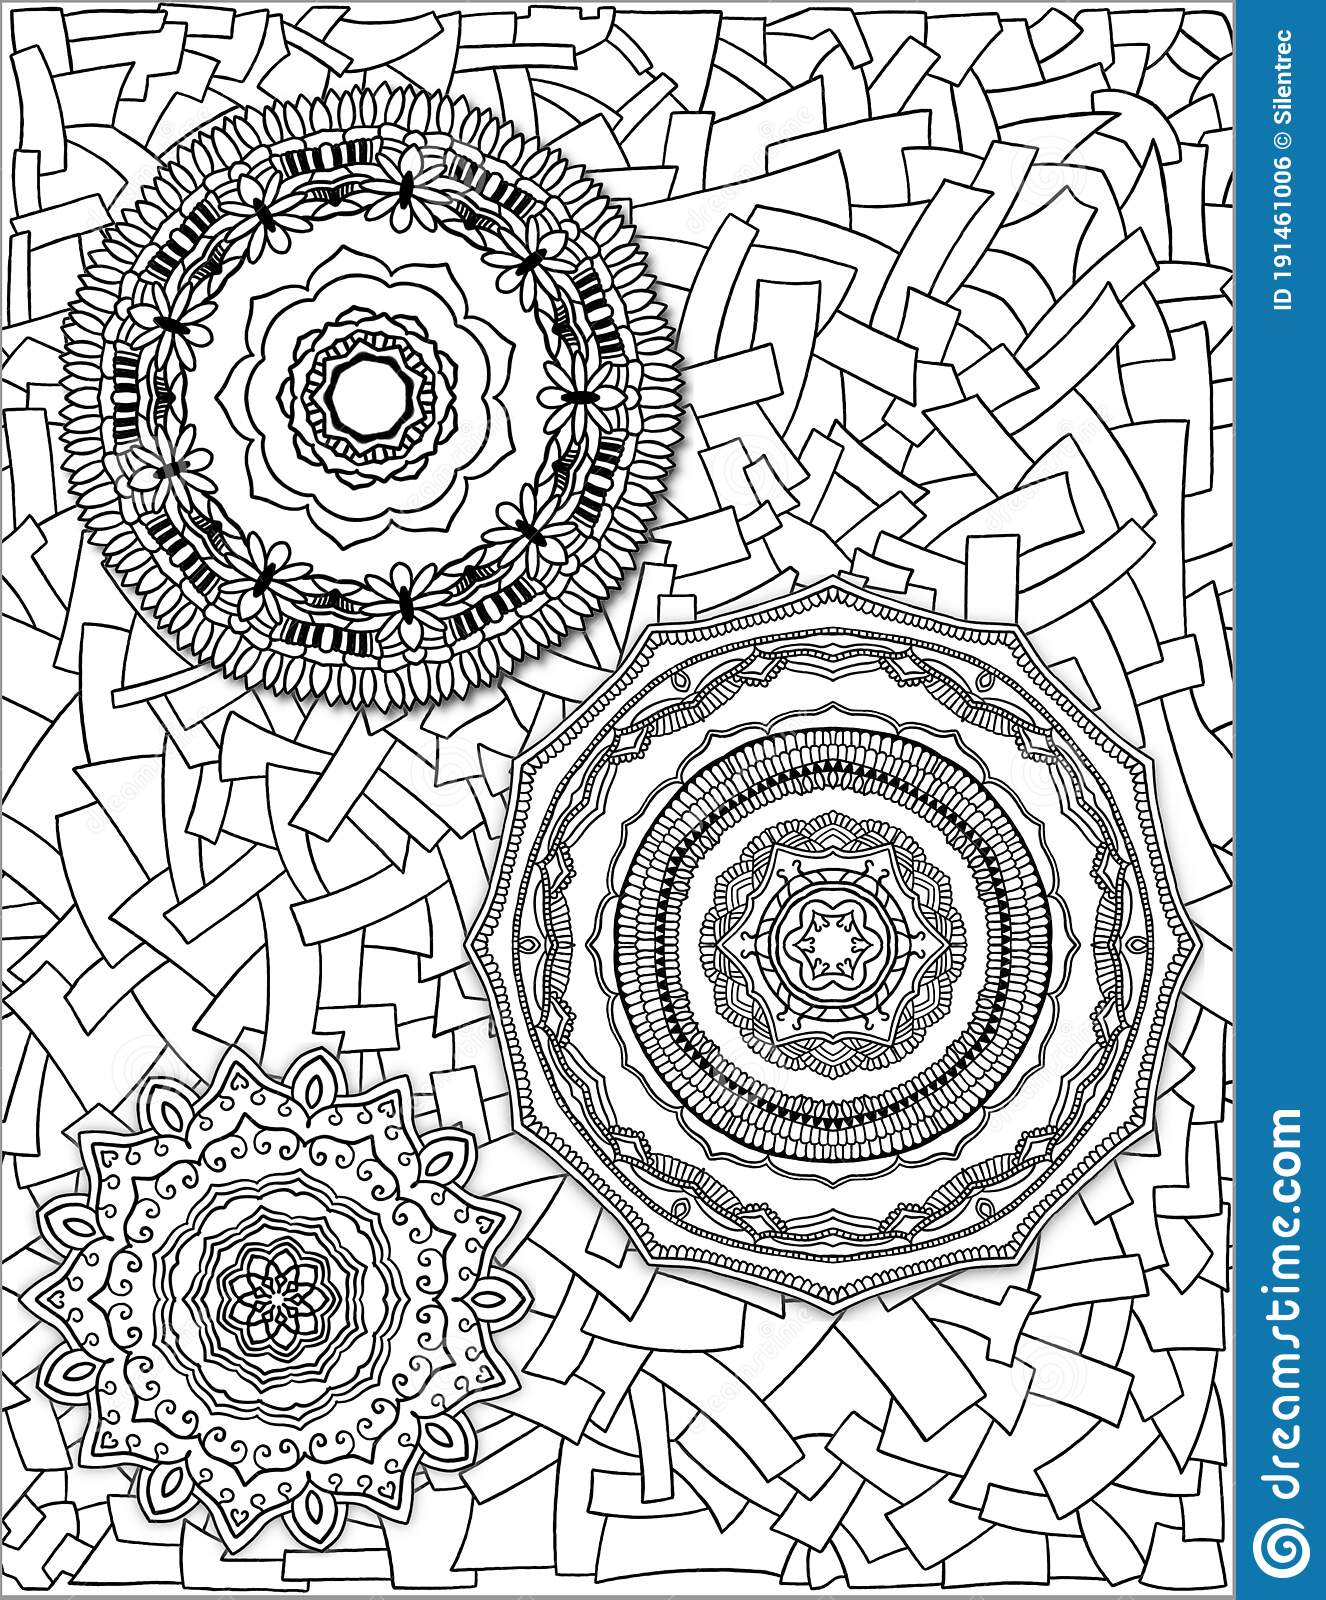 Colouring Patterns Stock Illustrations 1 029 Colouring Patterns Stock Illustrations Vectors Clipart Dreamstime